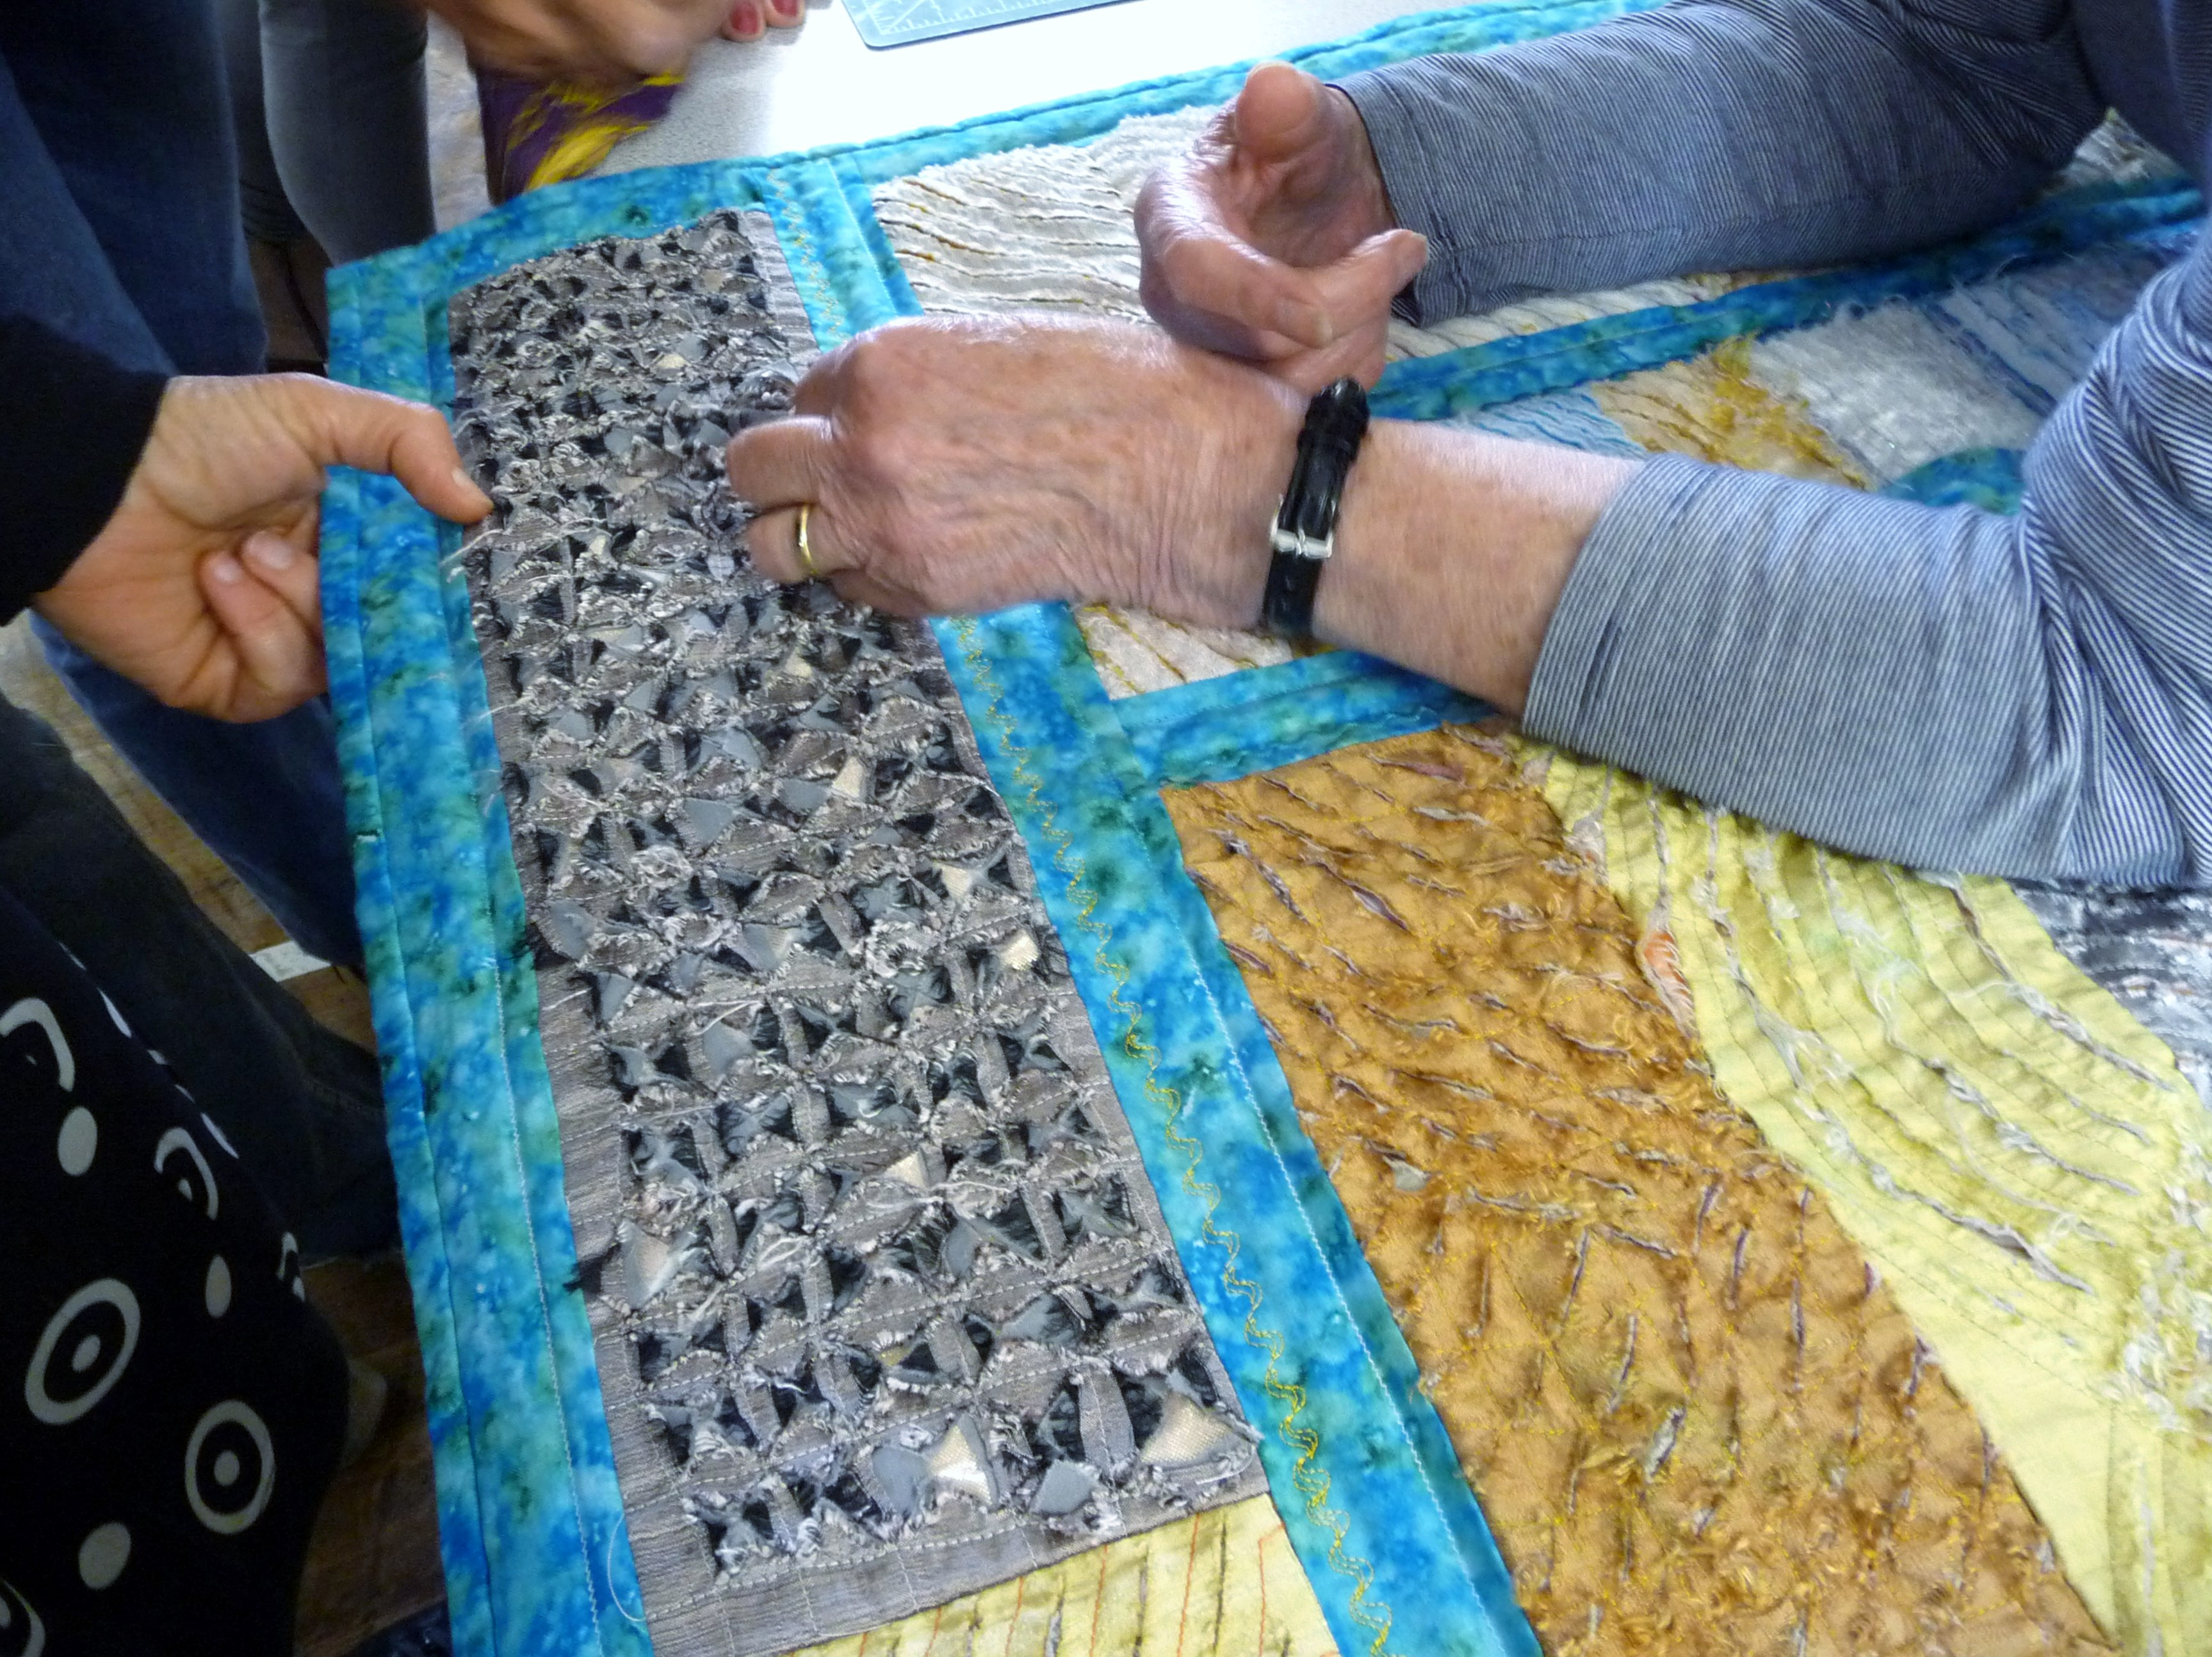 students are examining 'chenille' fabric quilt made by Norma Heron